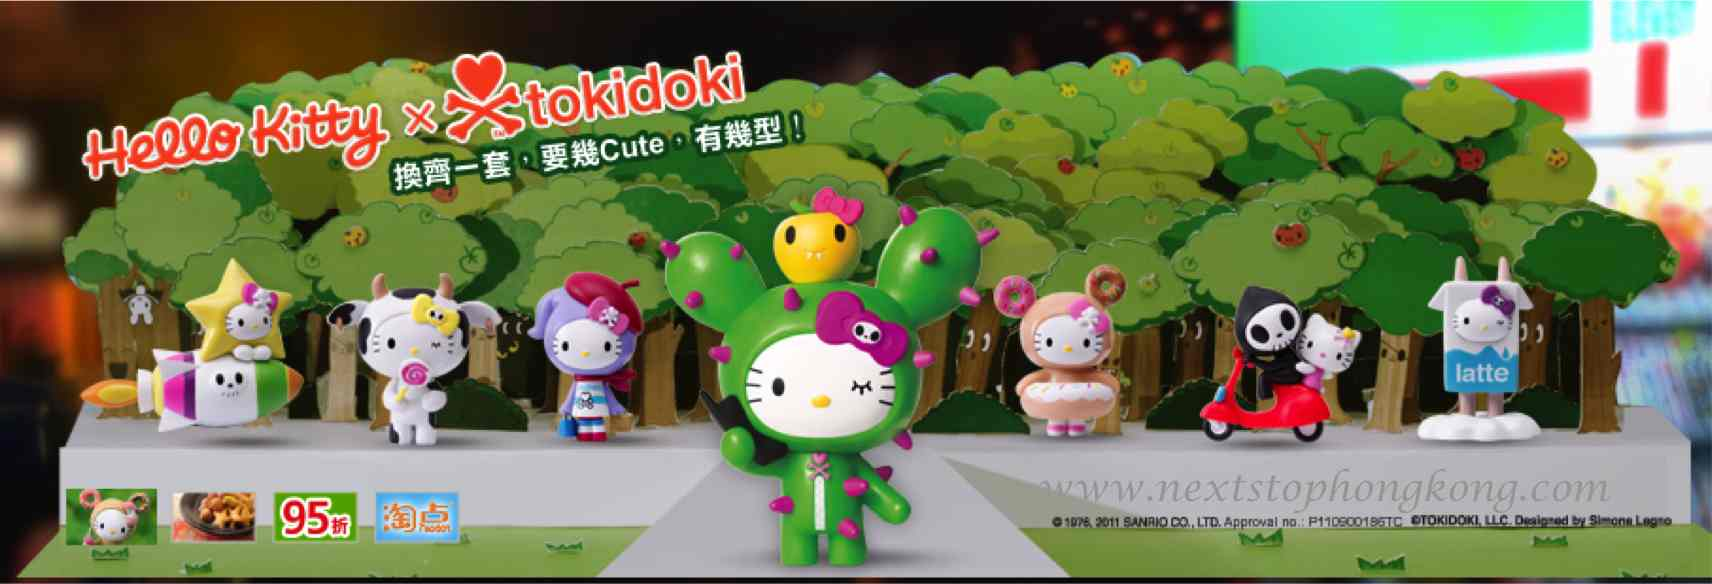 7-Eleven_Hello Kitty X tokidoki